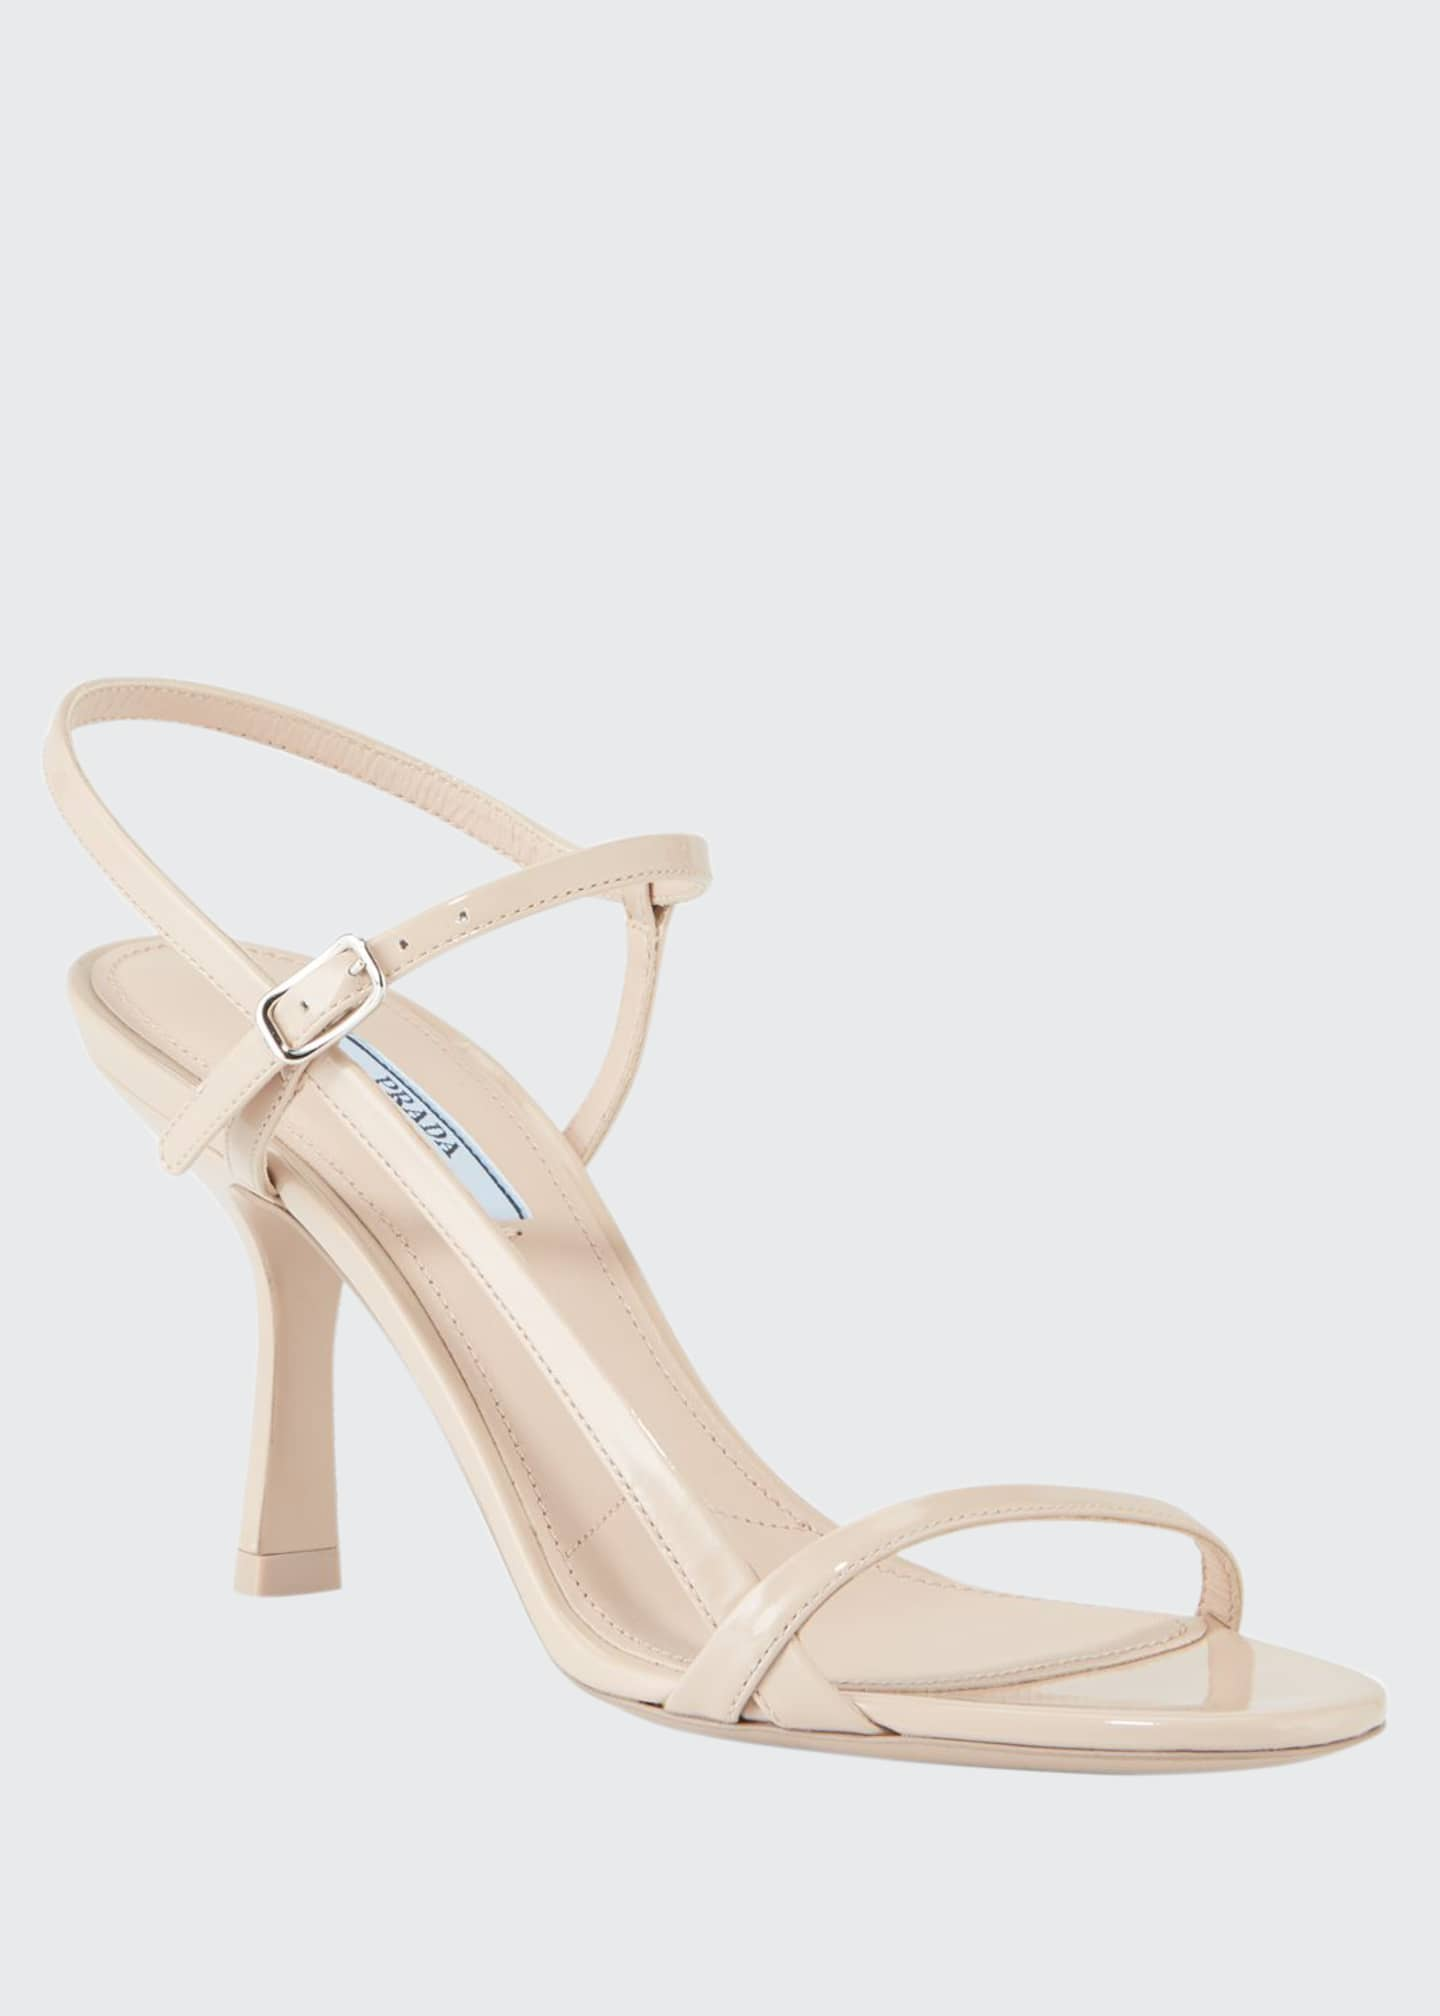 Prada 75mm Strappy Patent Leather Sandals